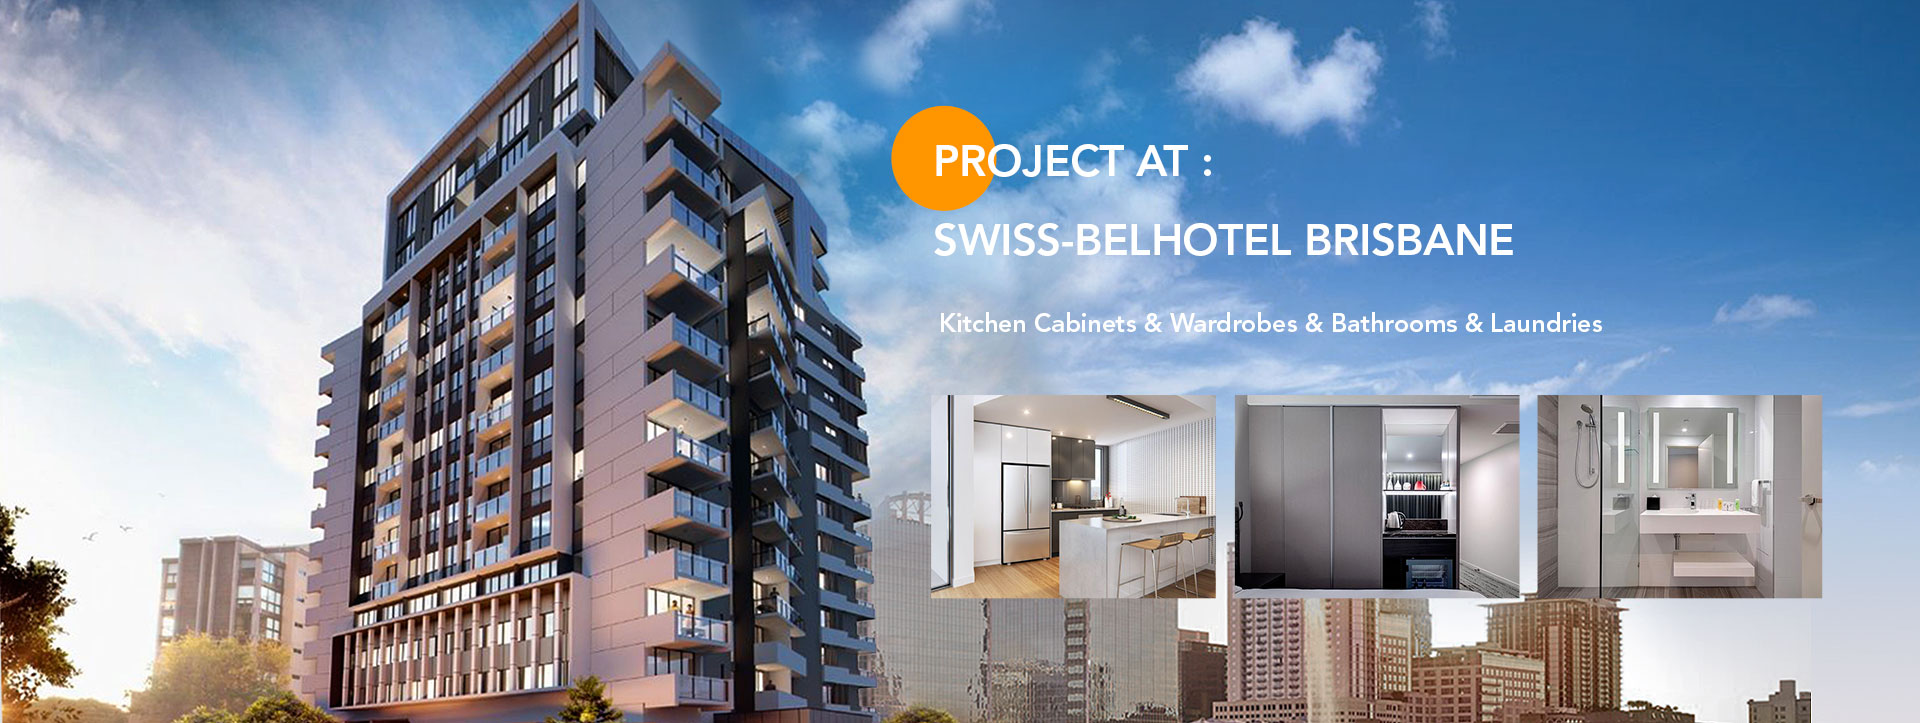 project-at-swiss-belhotel-brisbane01-banner